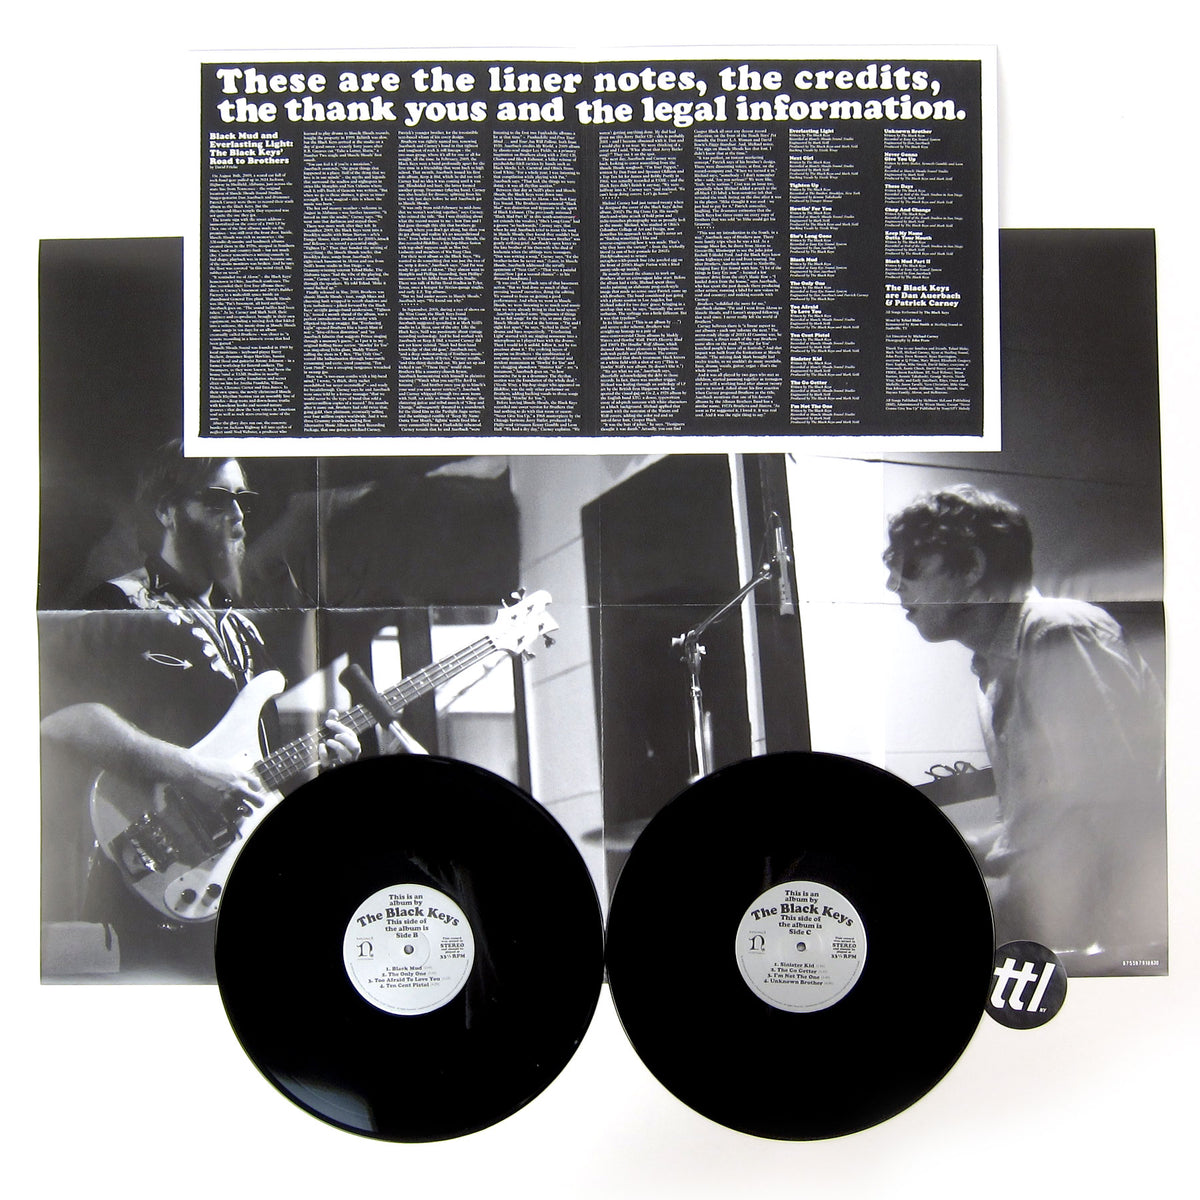 The Black Keys: Brothers - 10th Anniversary Edition Vinyl